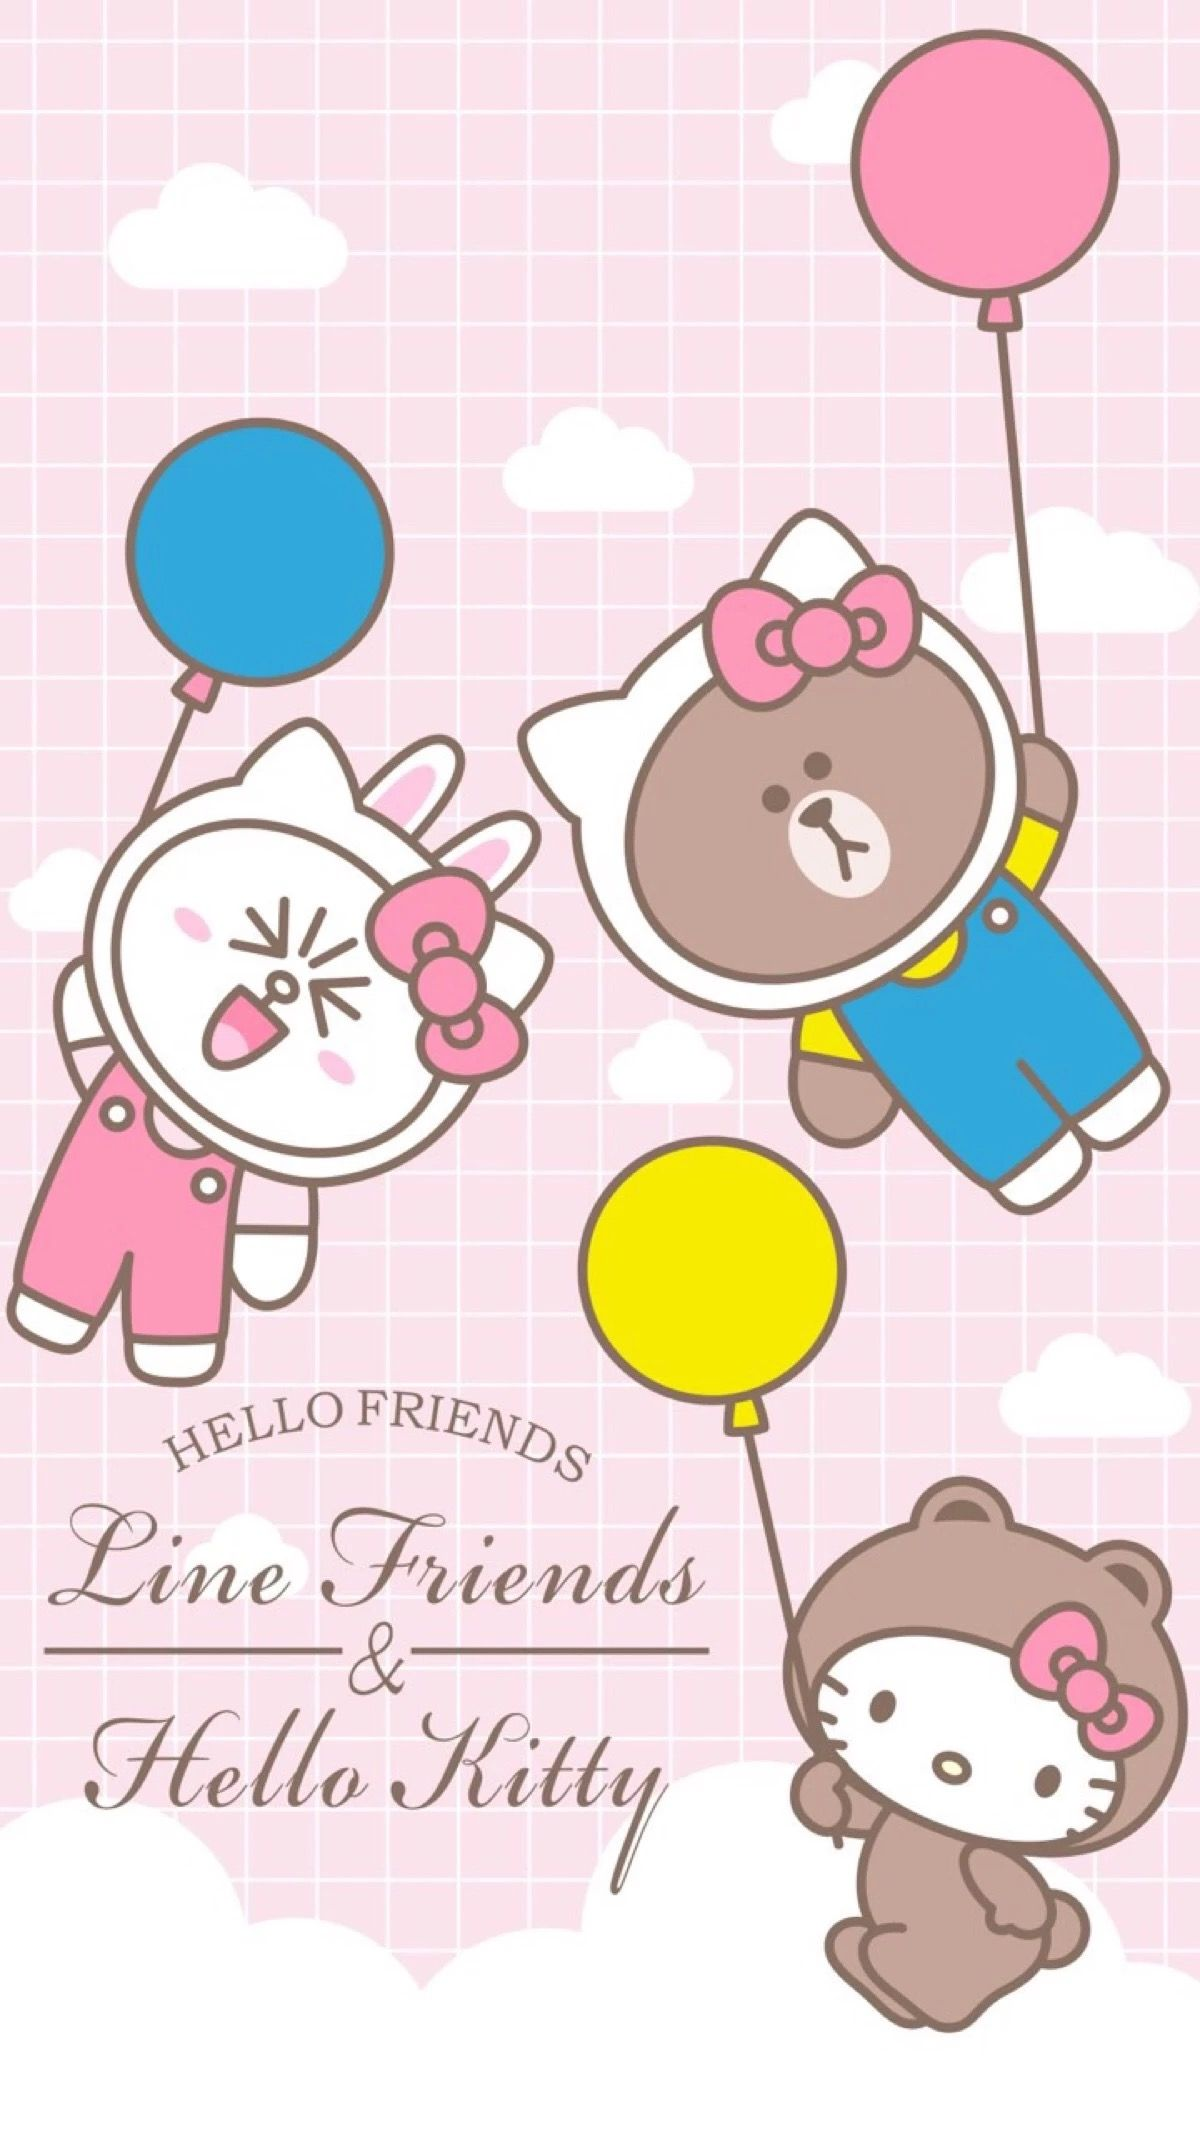 Popular Wallpaper Hello Kitty Friend - cbc67f0257d601f663181f431015f14c  Trends_988916.jpg